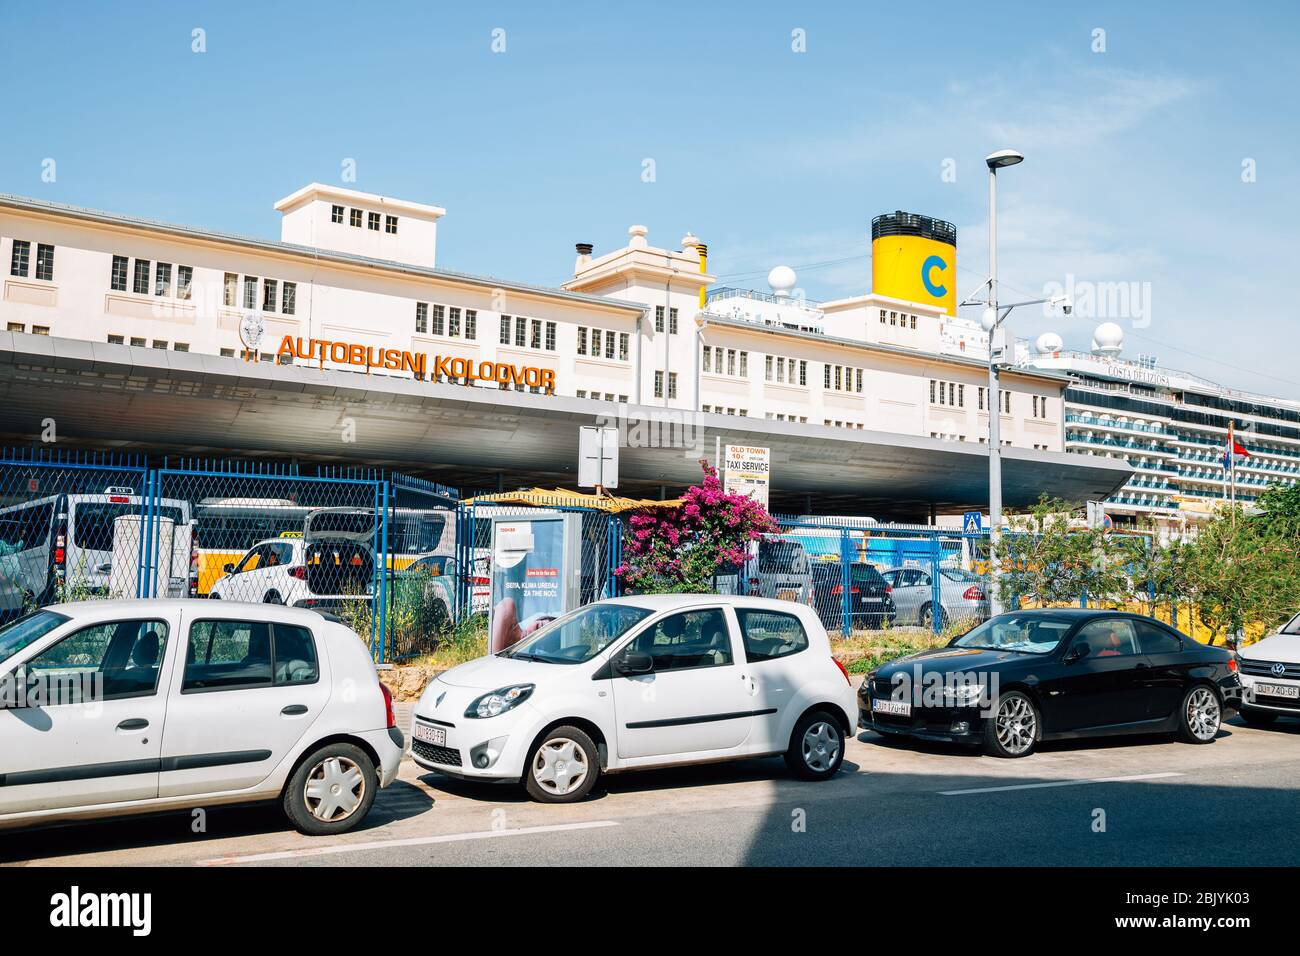 Main Bus Station High Resolution Stock Photography And Images Alamy